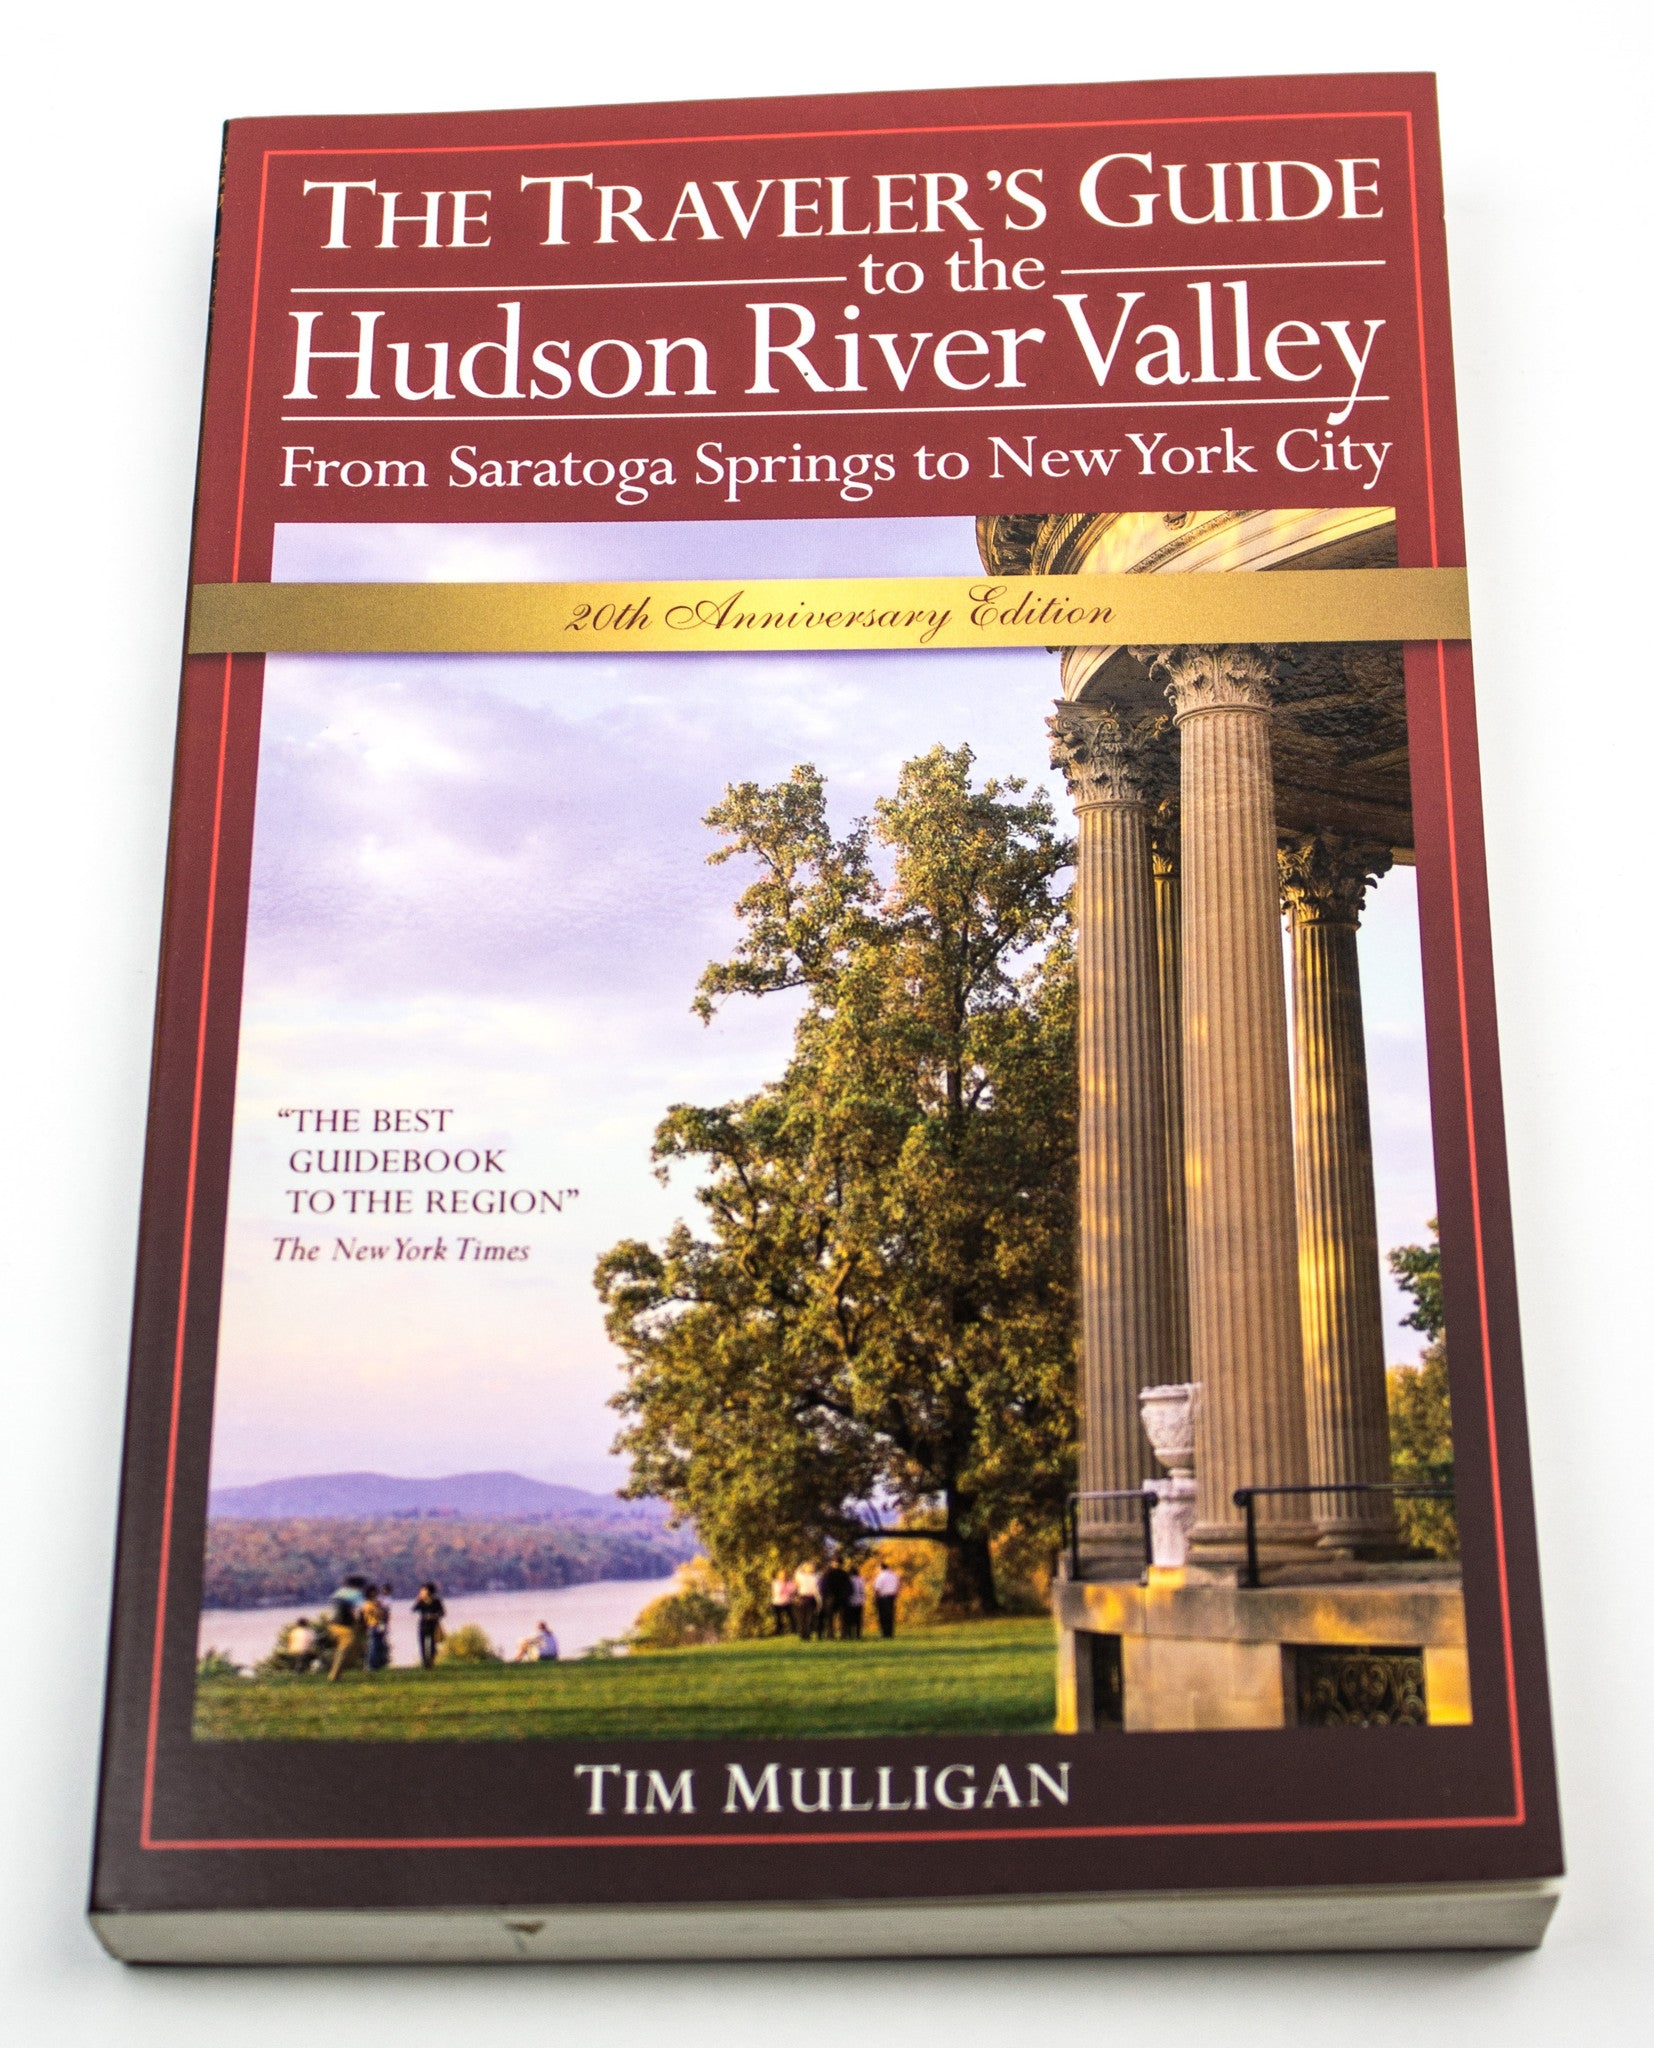 The Traveler's Guide to the Hudson River Valley